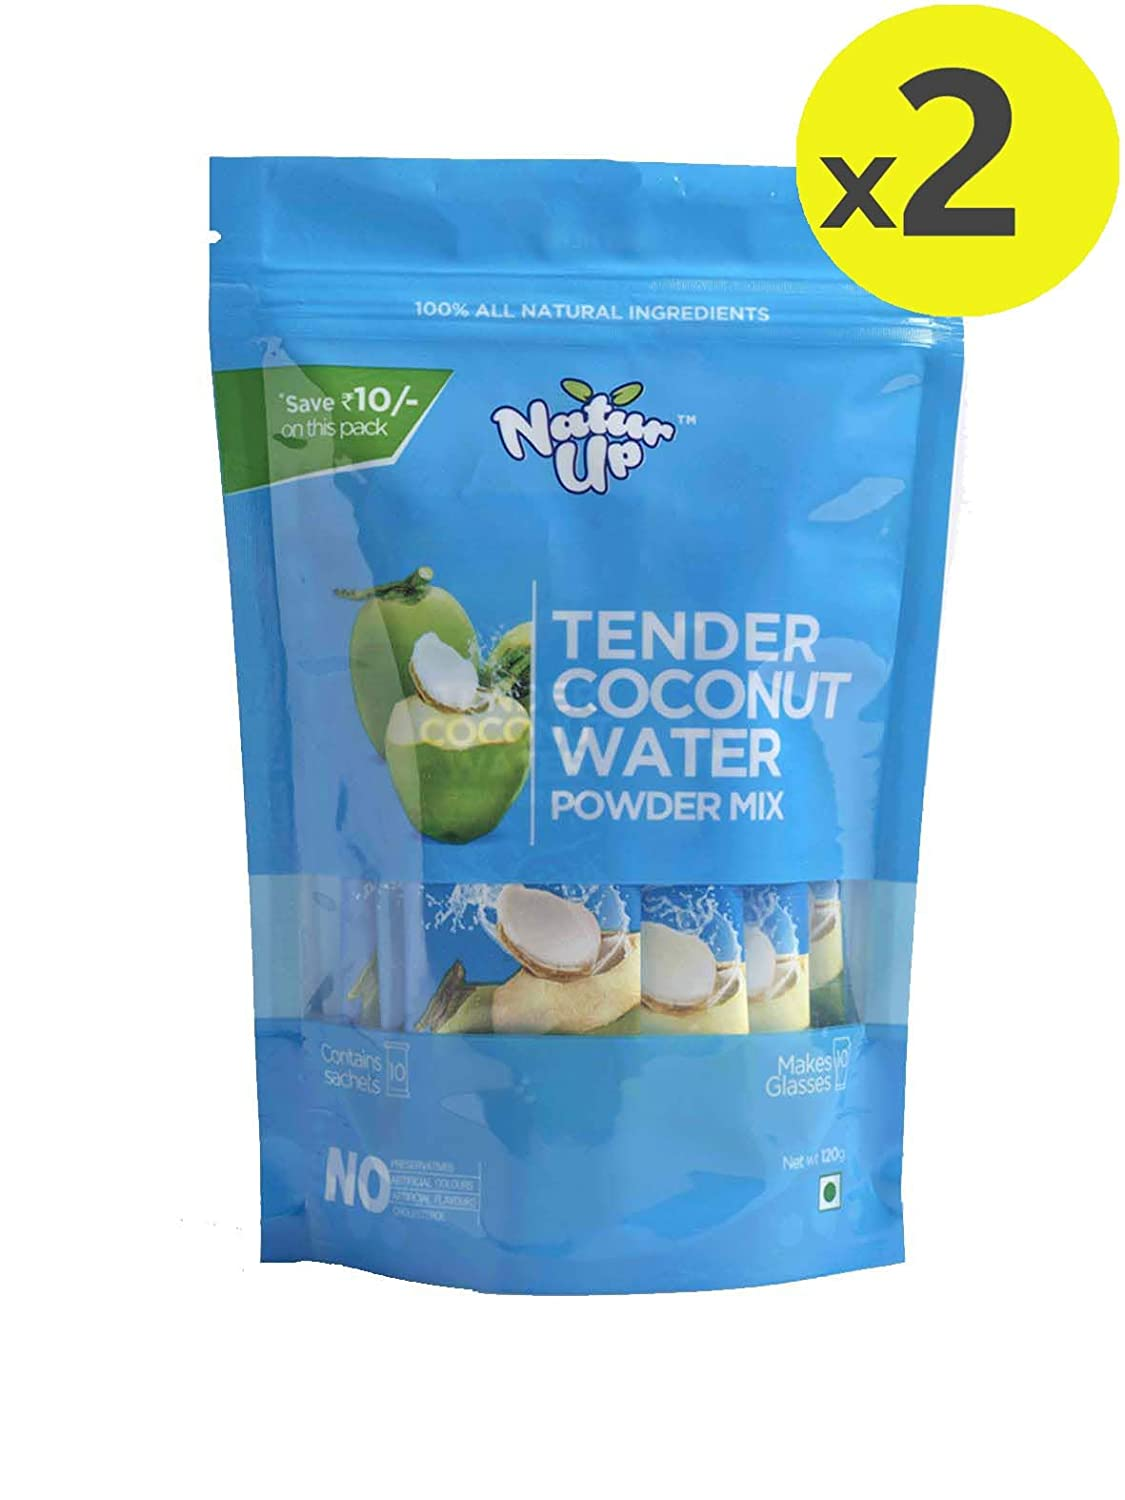 NaturUp Tender Coconut Water Powder Mix, 240 grams (2 x Pack of 10 sachets)